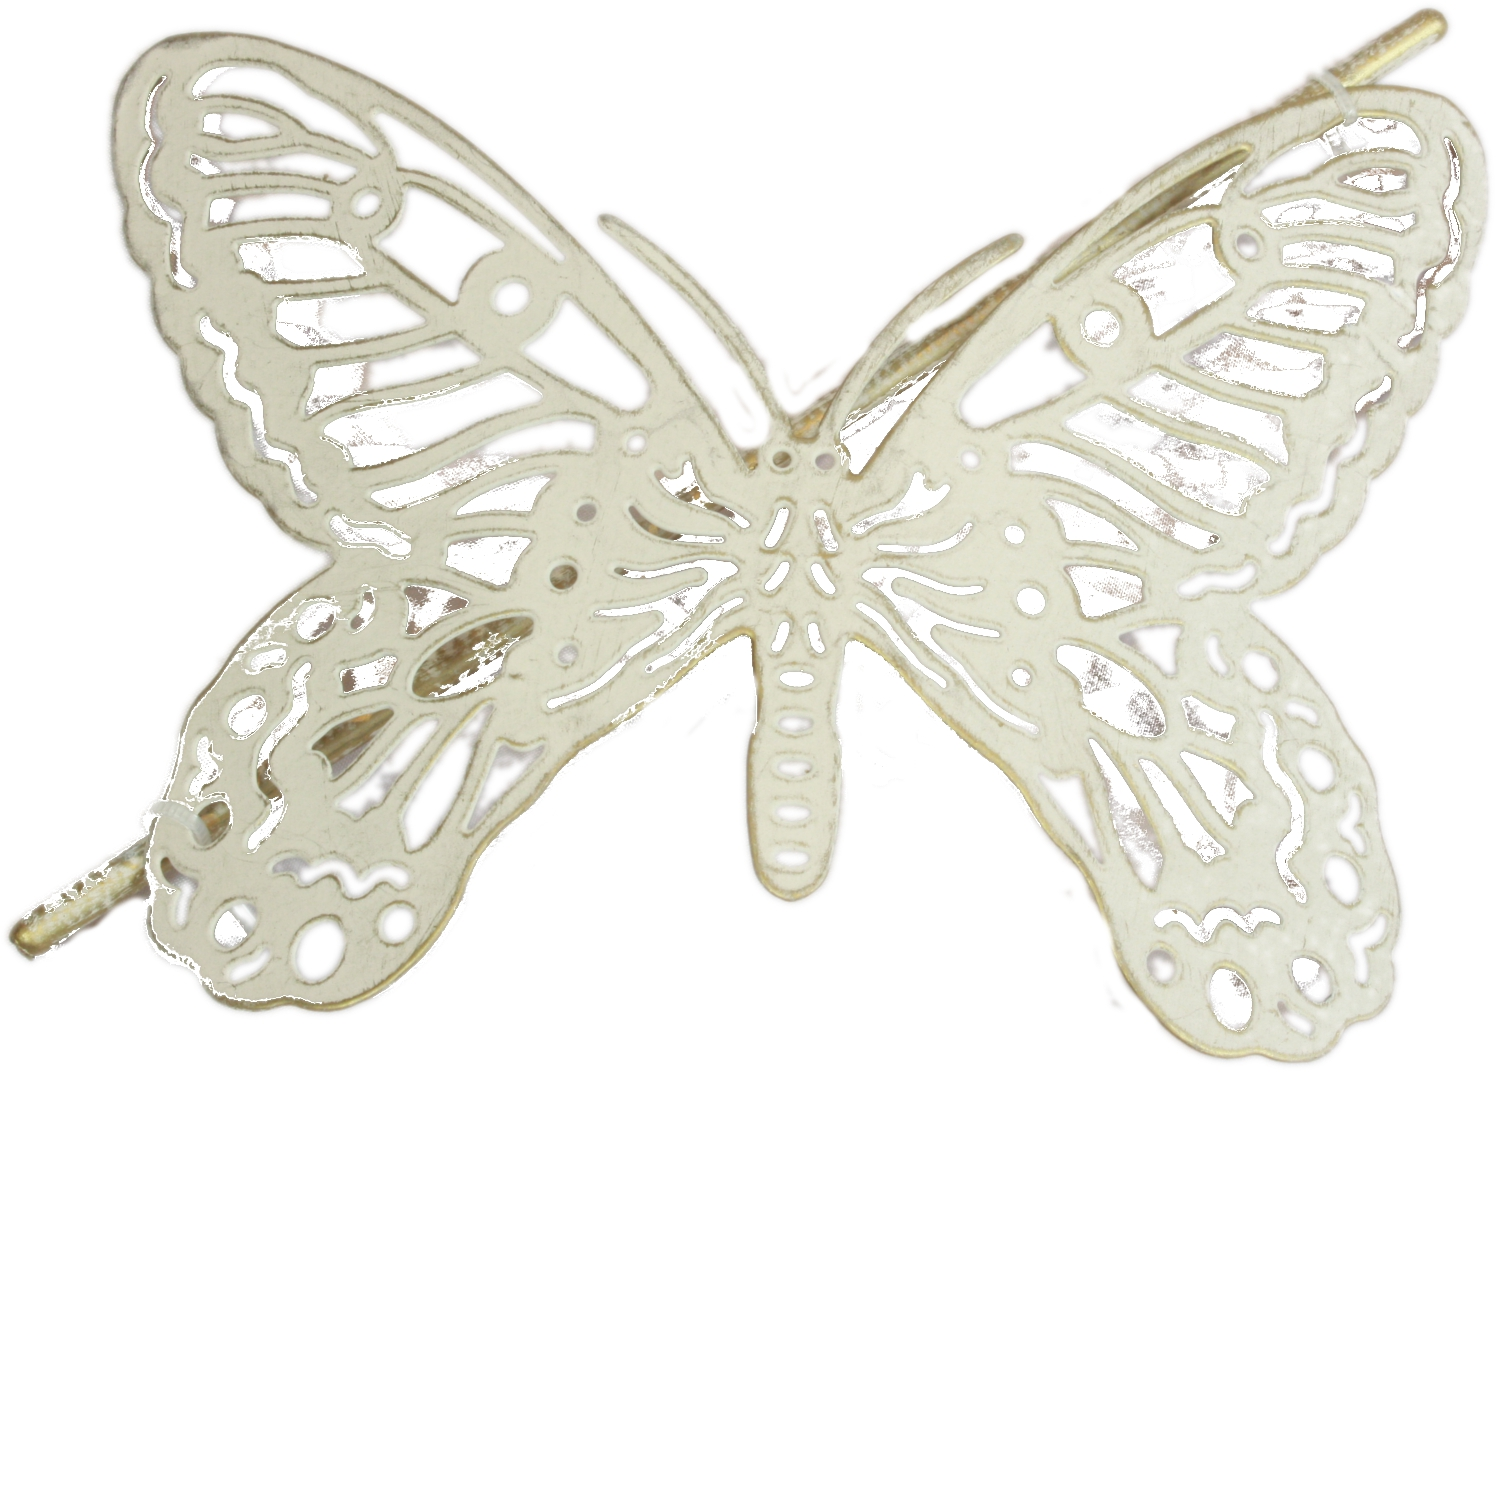 1x Brushed Gold Amp Cream Butterfly Design Metal Curtain Tie